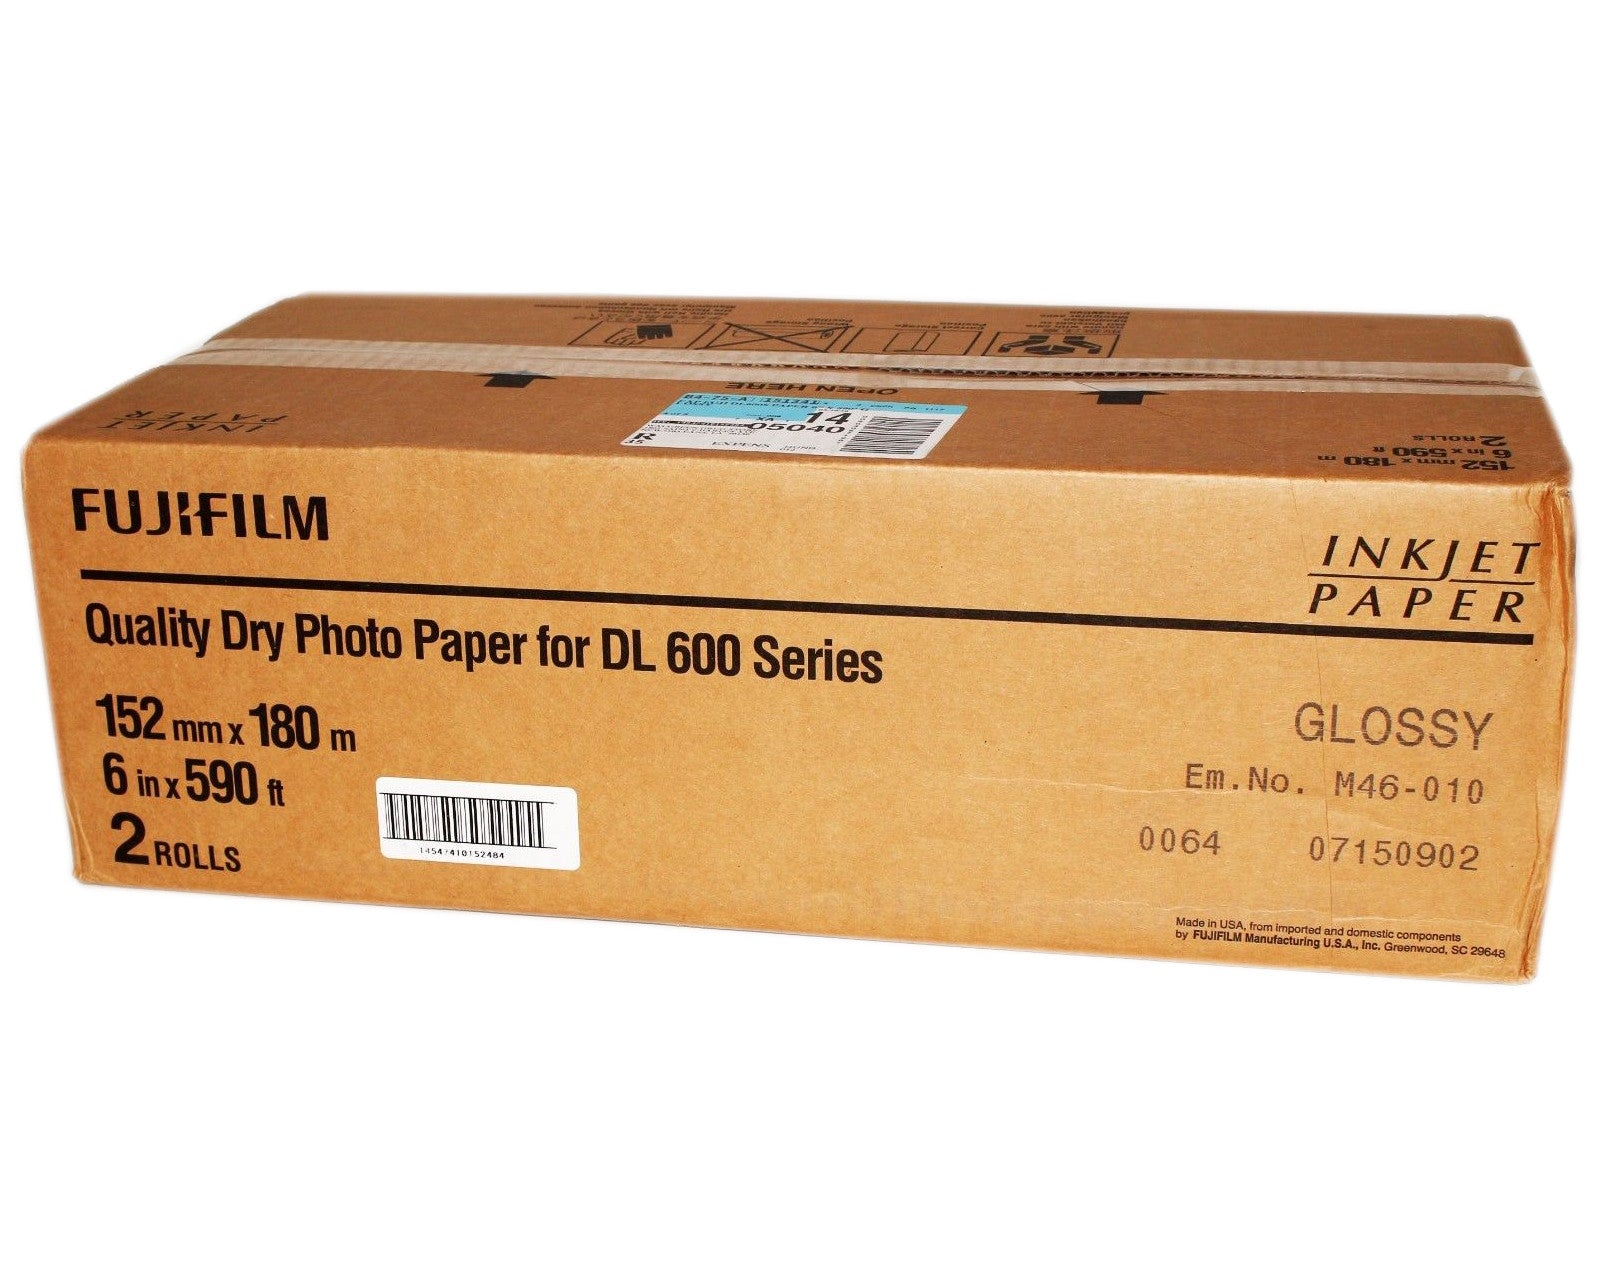 kodak and fujifilm essay example Make sure your favorite photofinisher prints your cherished moments on fujicolor  crystal archive type ca paper for high-quality, long-lasting prints from film or.